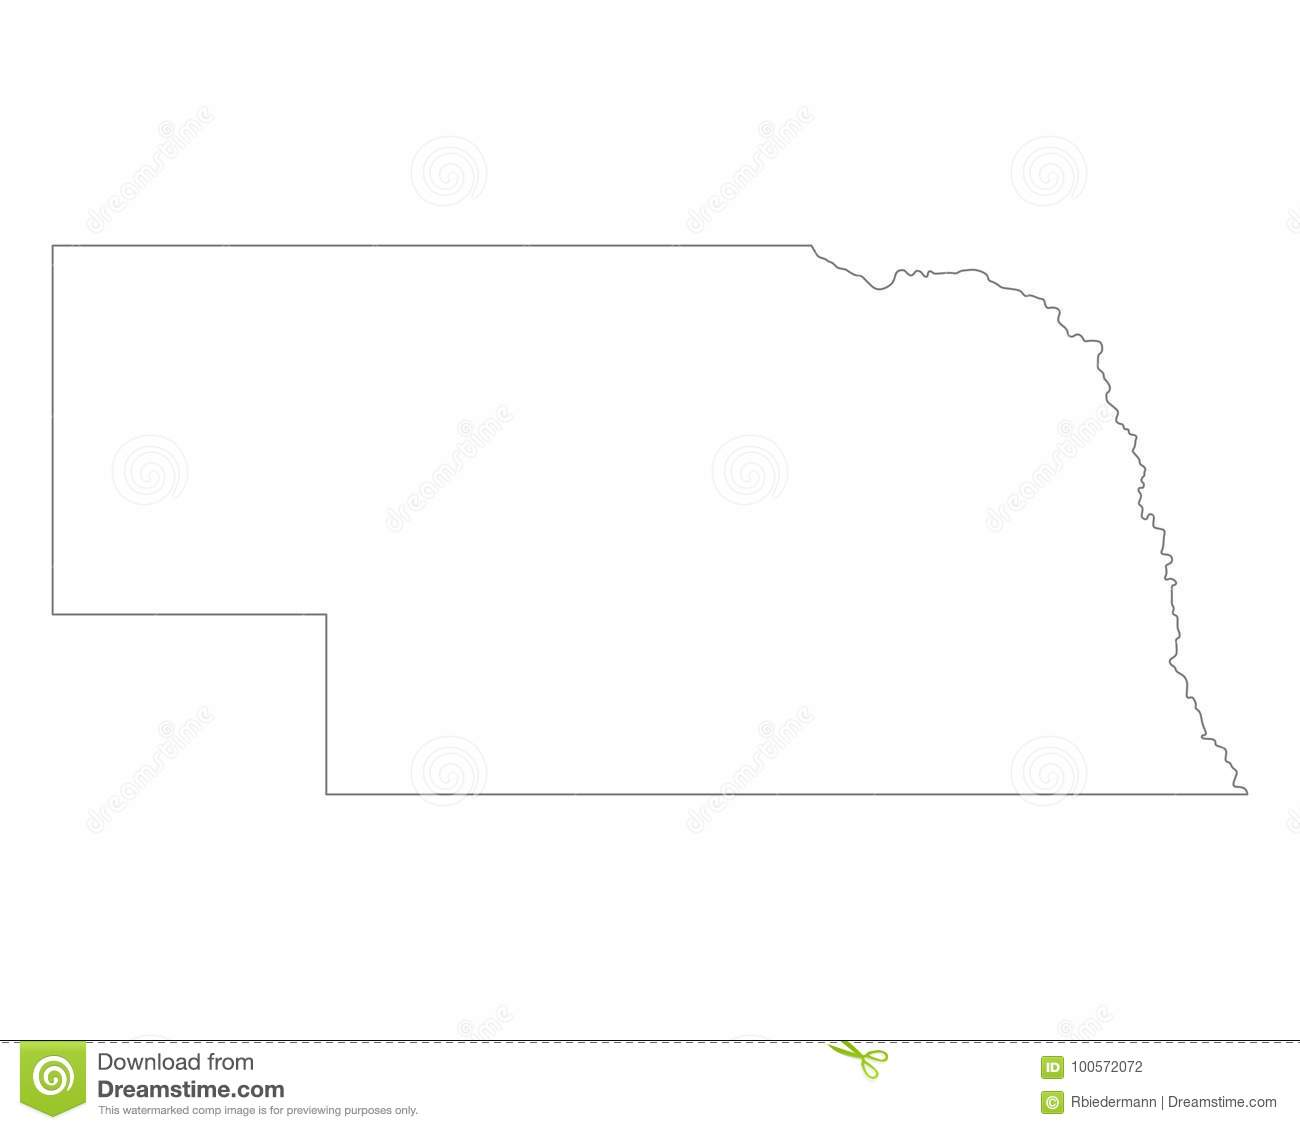 Free Nebraska Map.Map Of Nebraska Stock Vector Illustration Of Vector 100572072